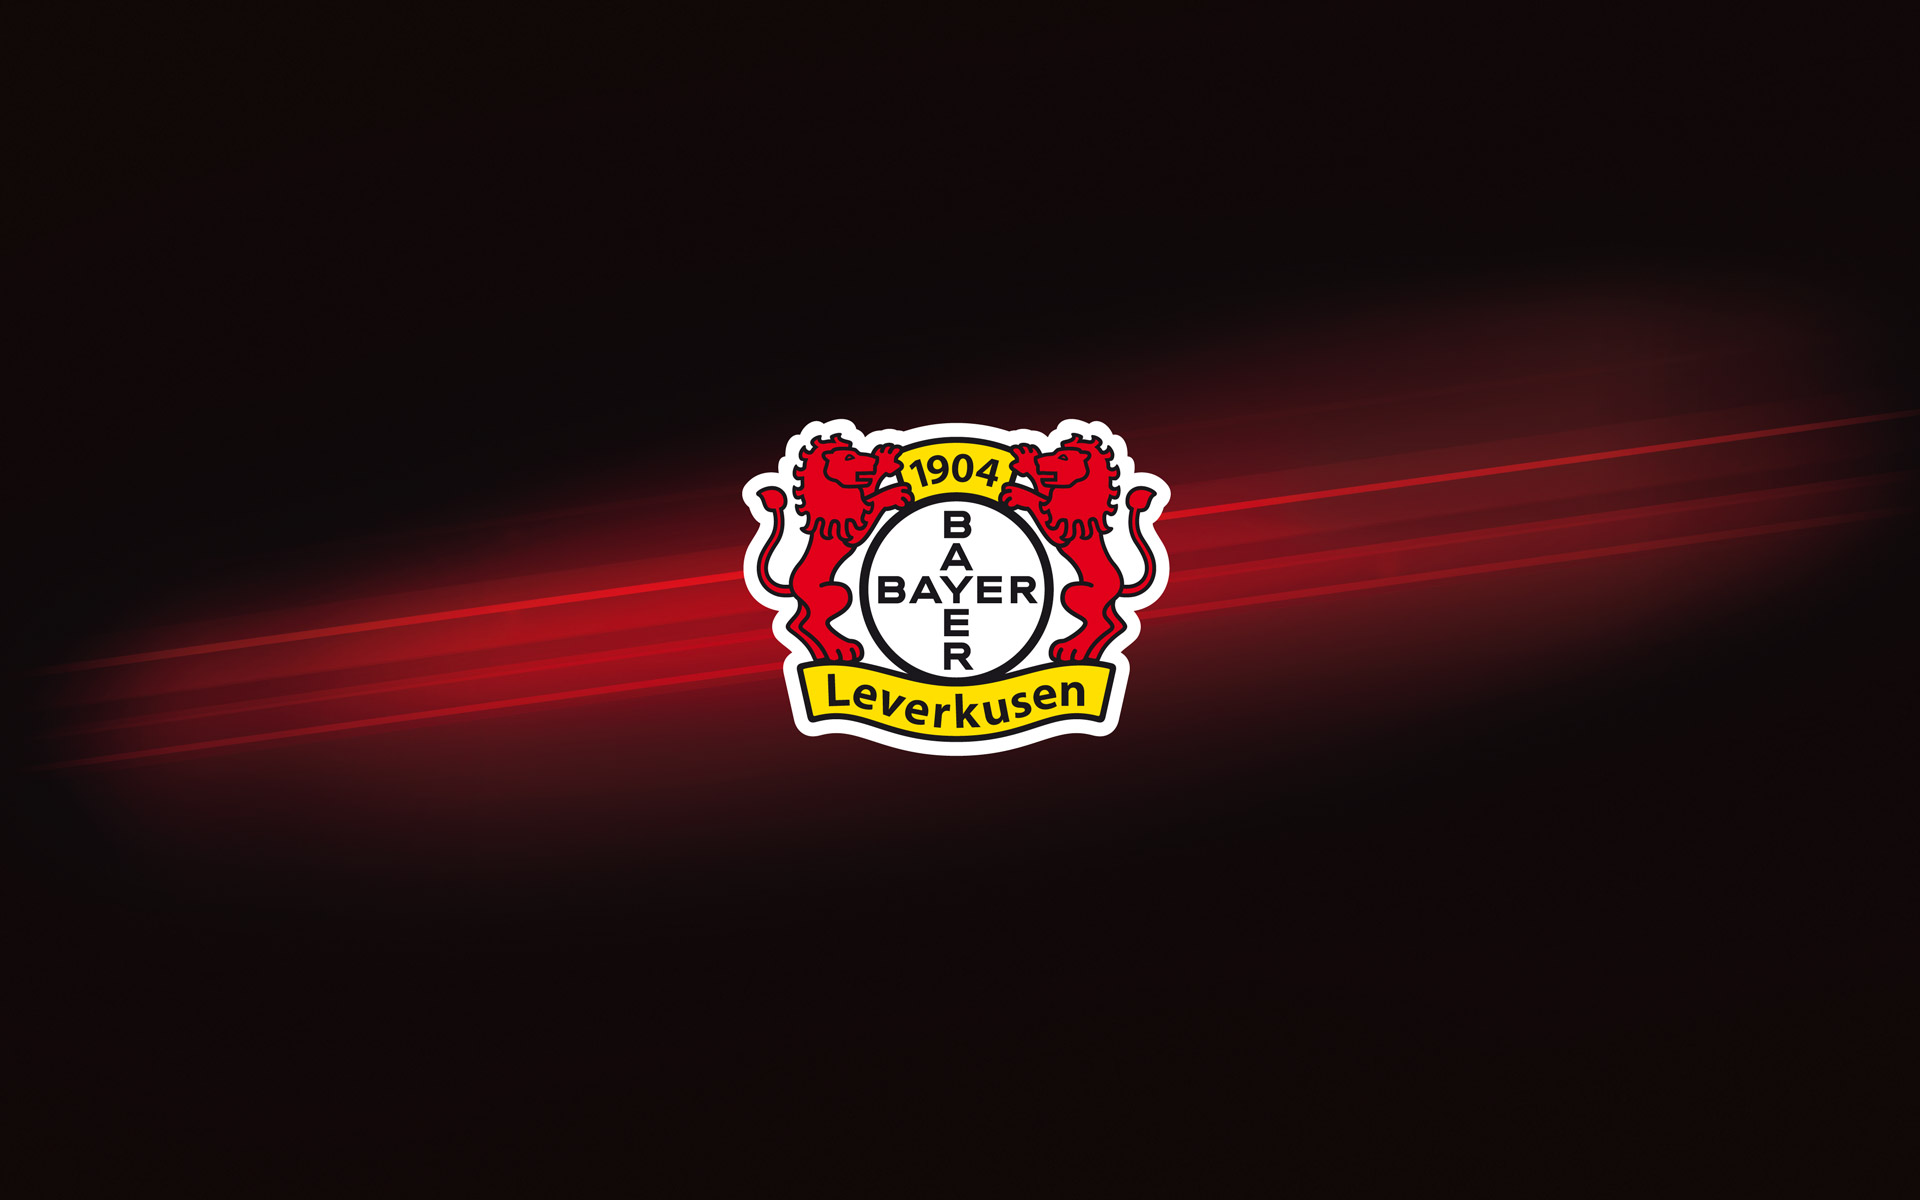 Bayer 04 Leverkusen Corporate Design, Gestaltungselement – der Laser